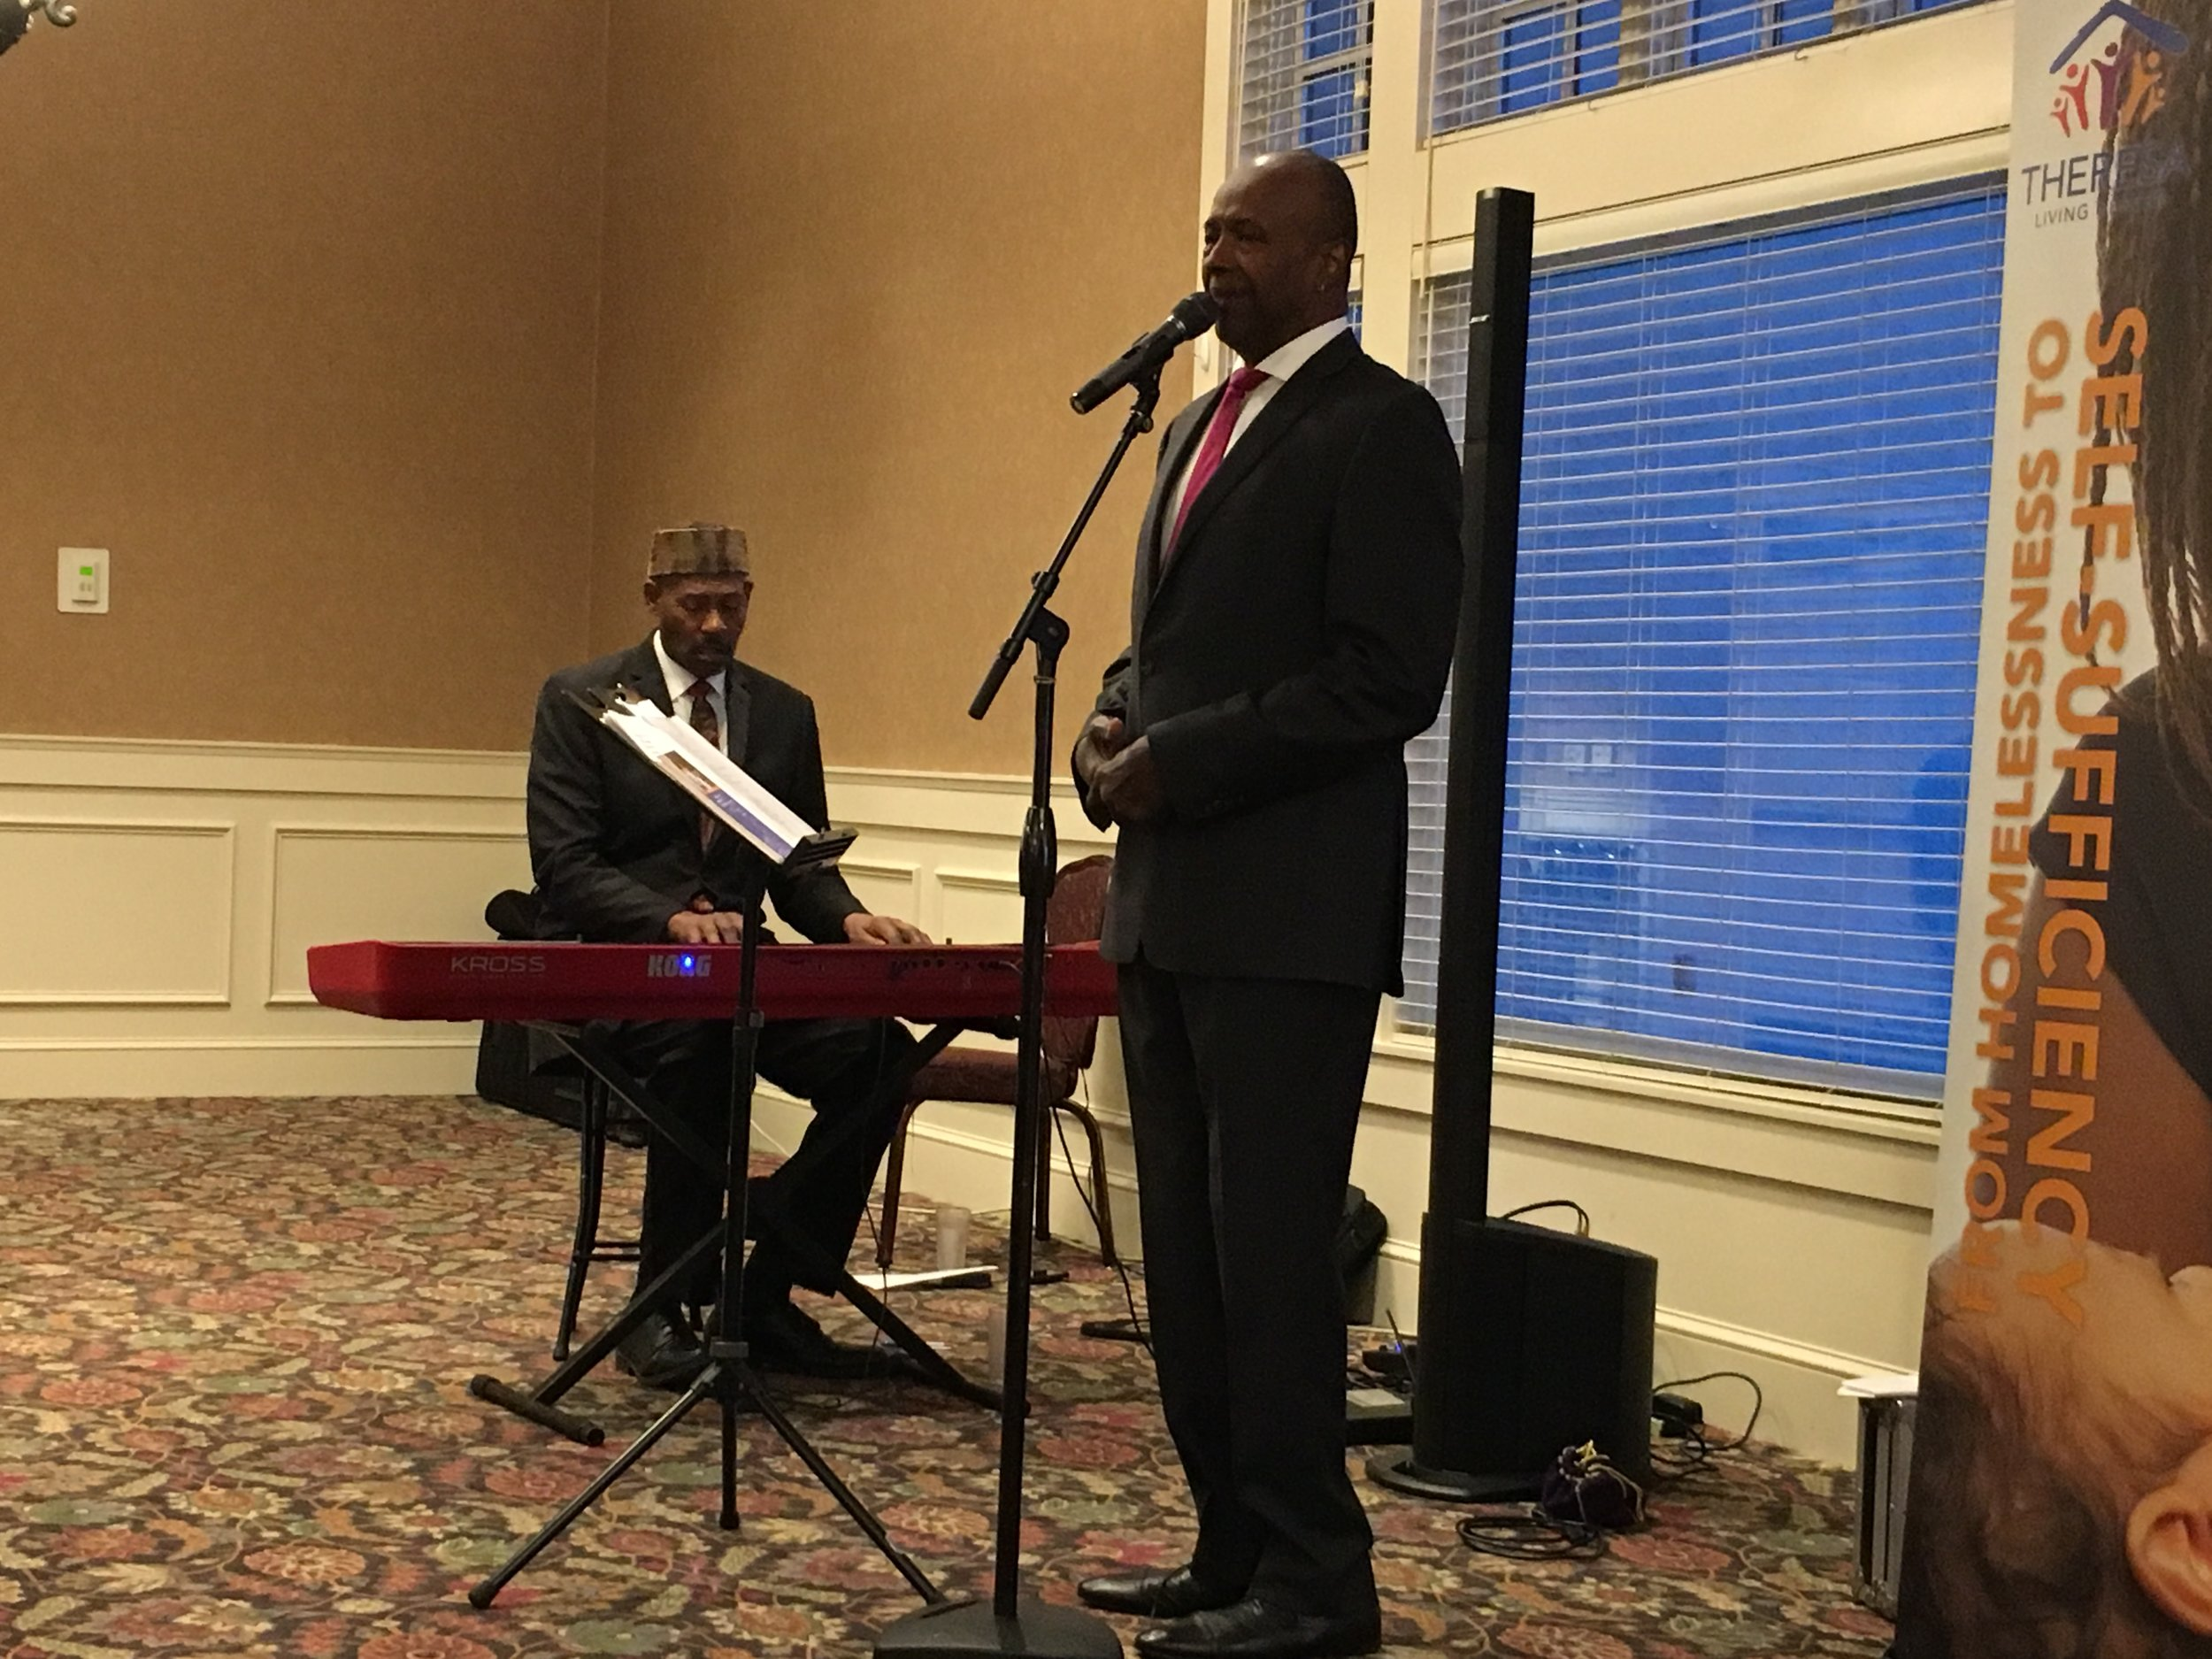 Wonderful music by keyboardist Thomas West and vocalist Maurice Jacox, who performed several selections during the event. They added so much to our morning—thank you, gentlemen!